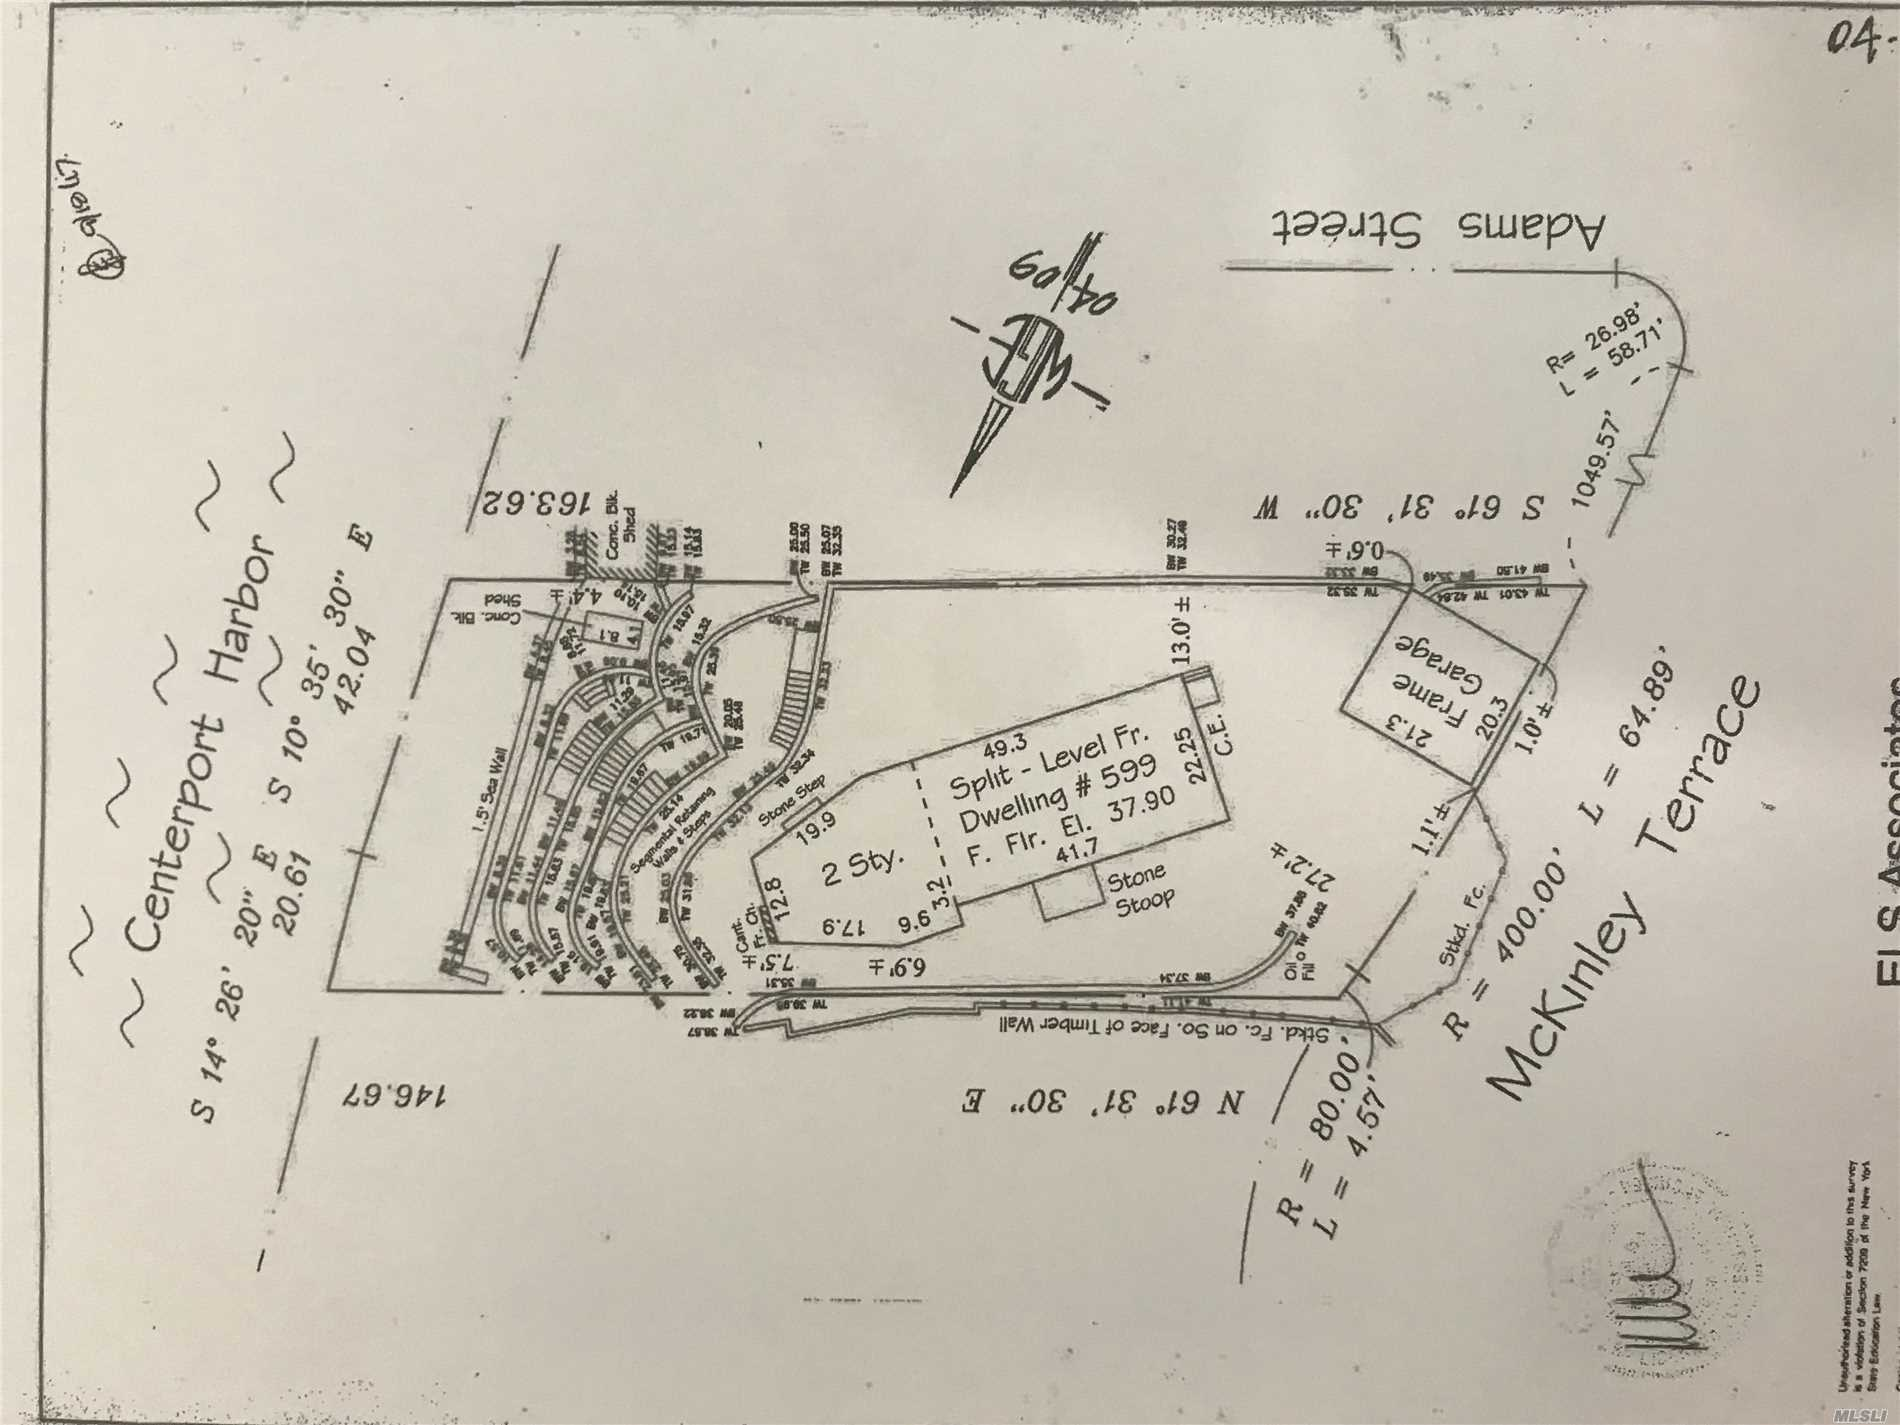 Lot 599 Mckinley Ter - Centerport, New York